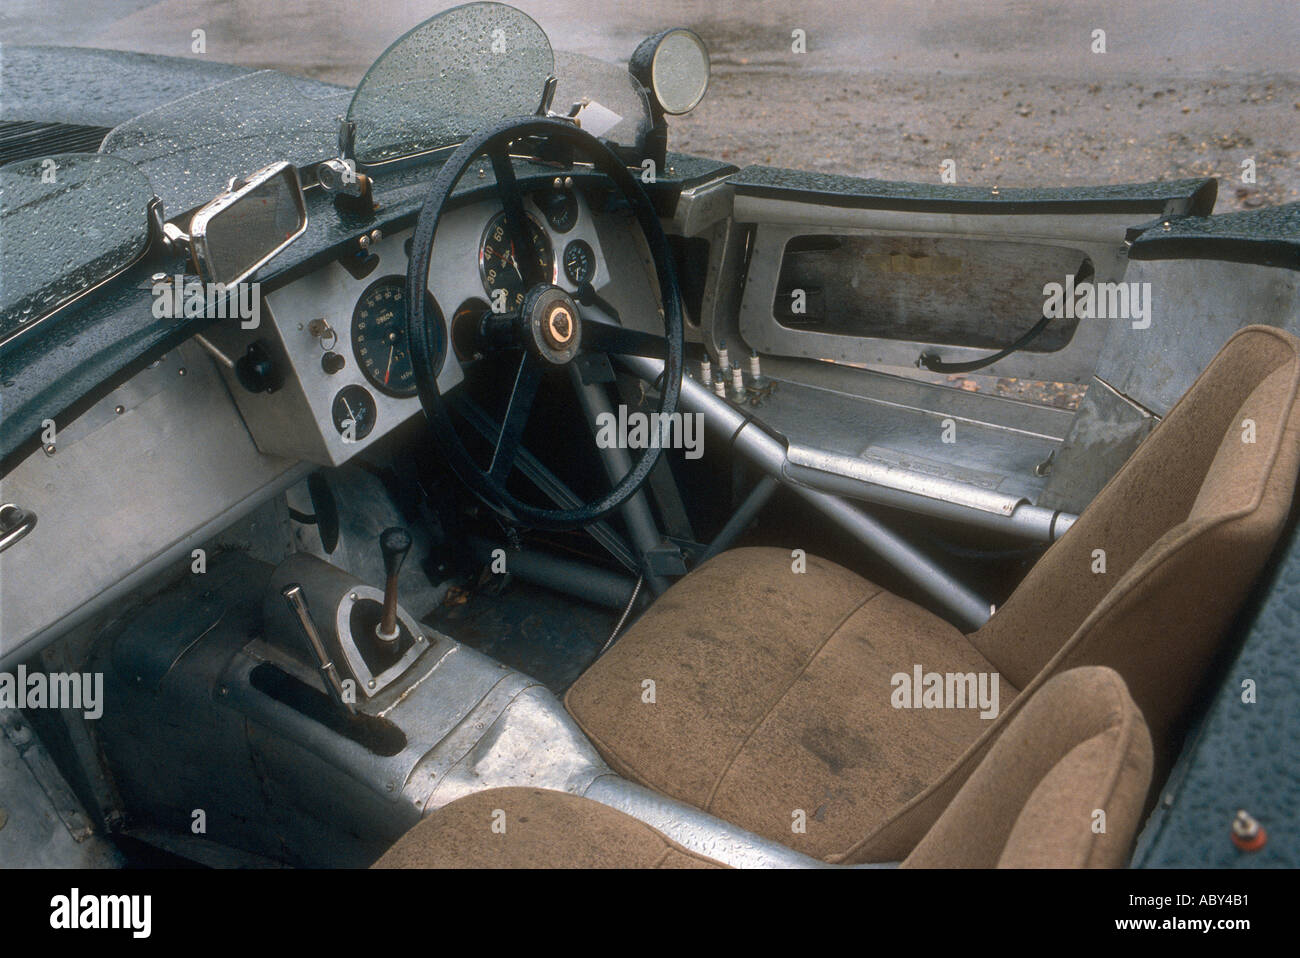 jaguar c type classic car interior stock photo royalty free image 2421936 alamy. Black Bedroom Furniture Sets. Home Design Ideas